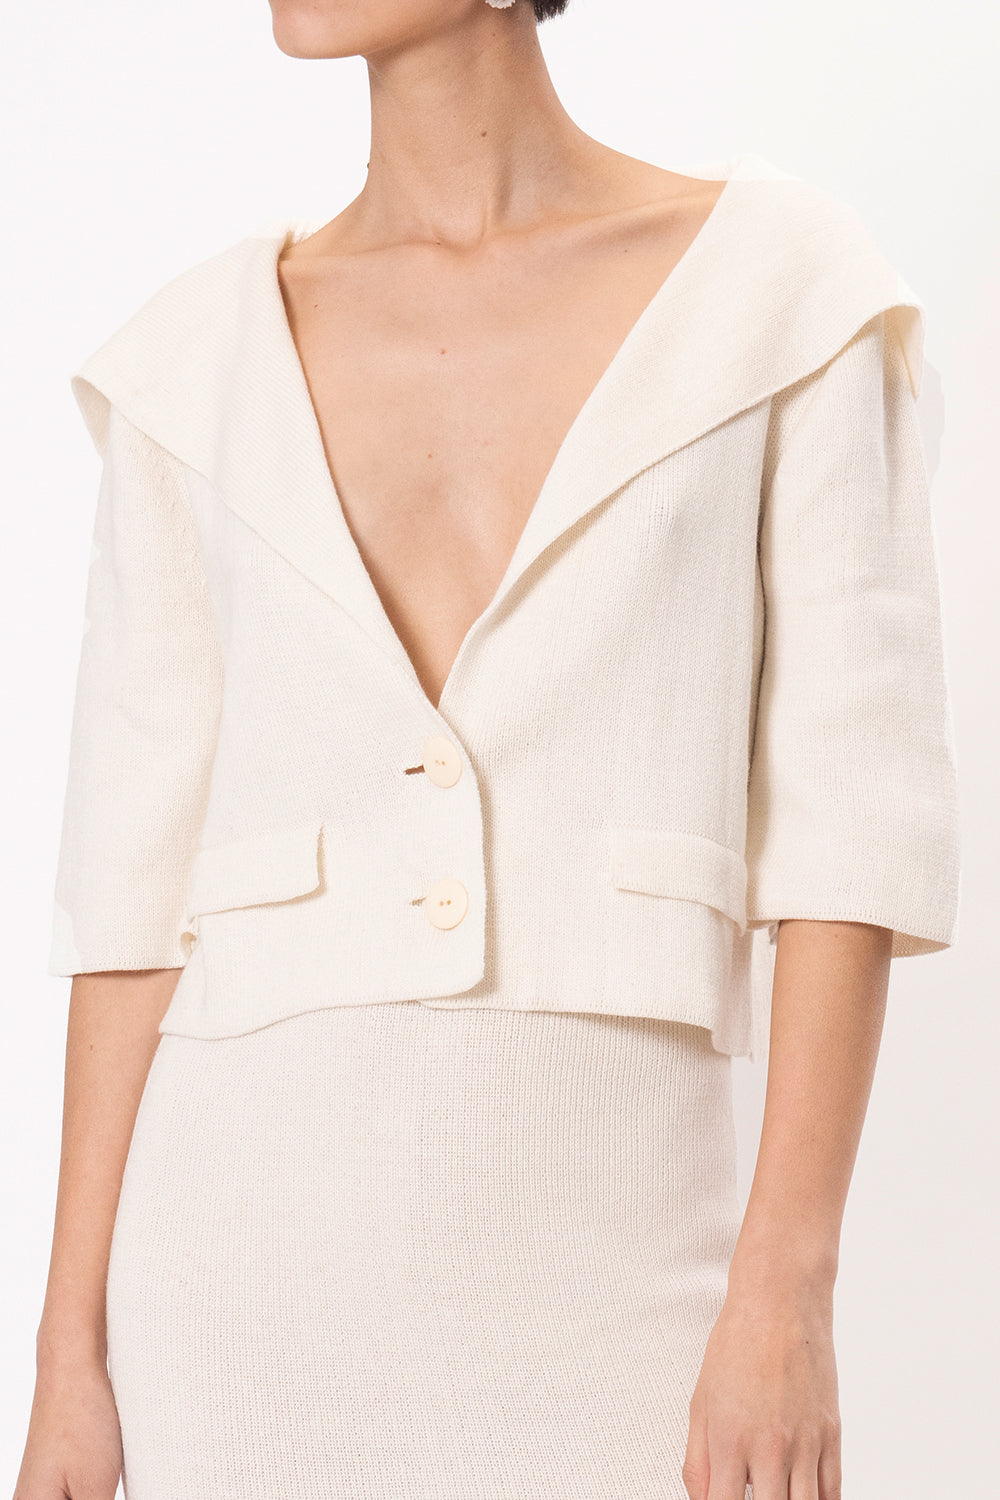 Ann Jacket in Ivory